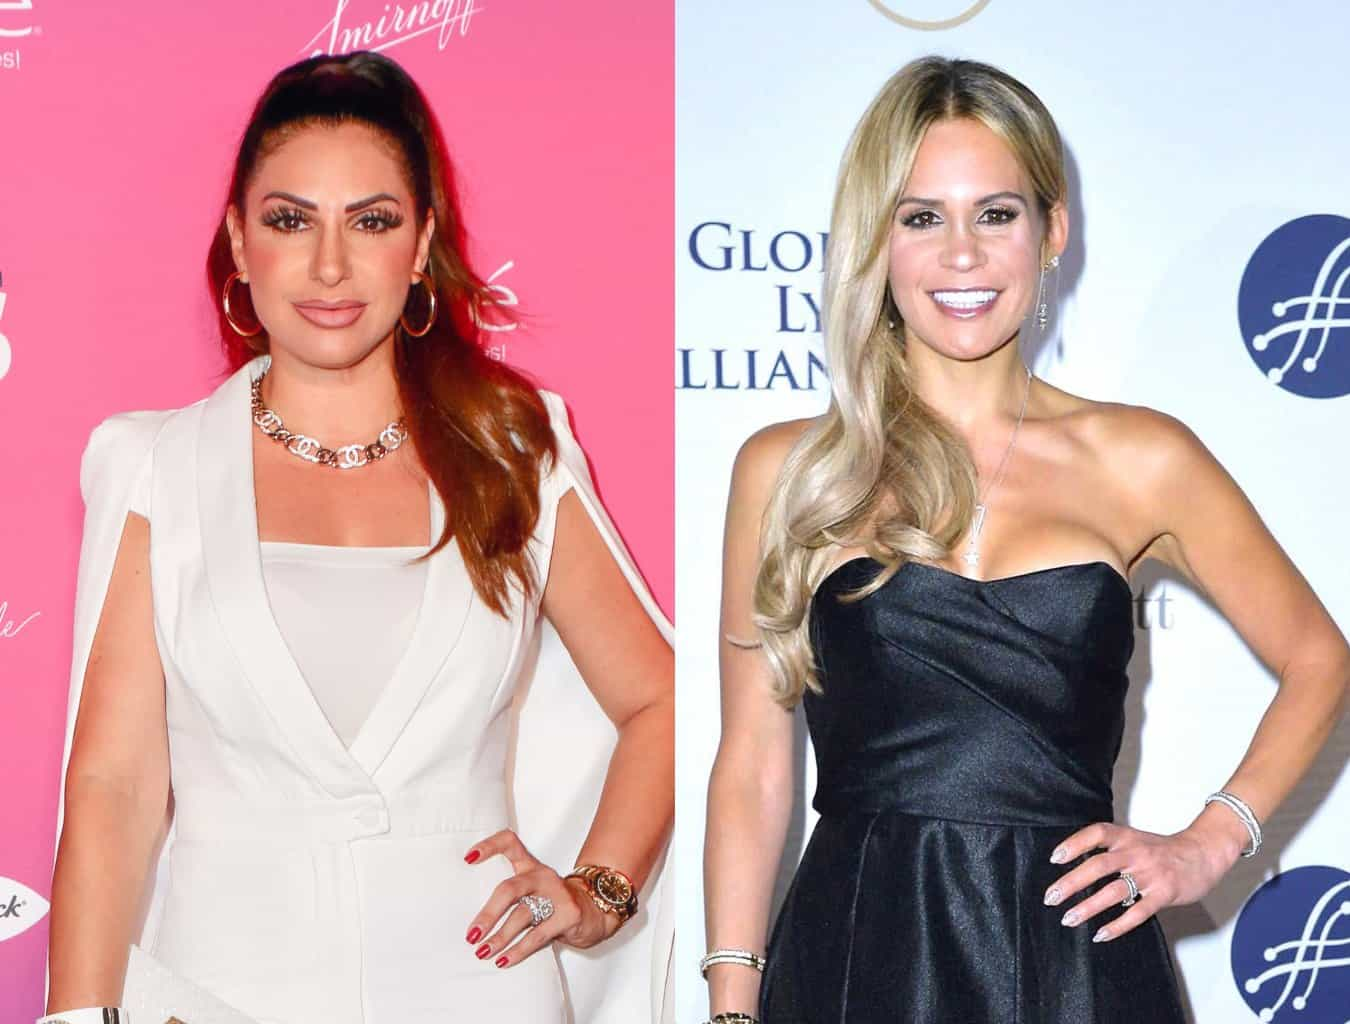 RHONJ Star Jennifer Aydin Suspects Jackie Goldschneider Still Has Eating Issues as Jackie Opens Up About Overcoming Her Lowest Point